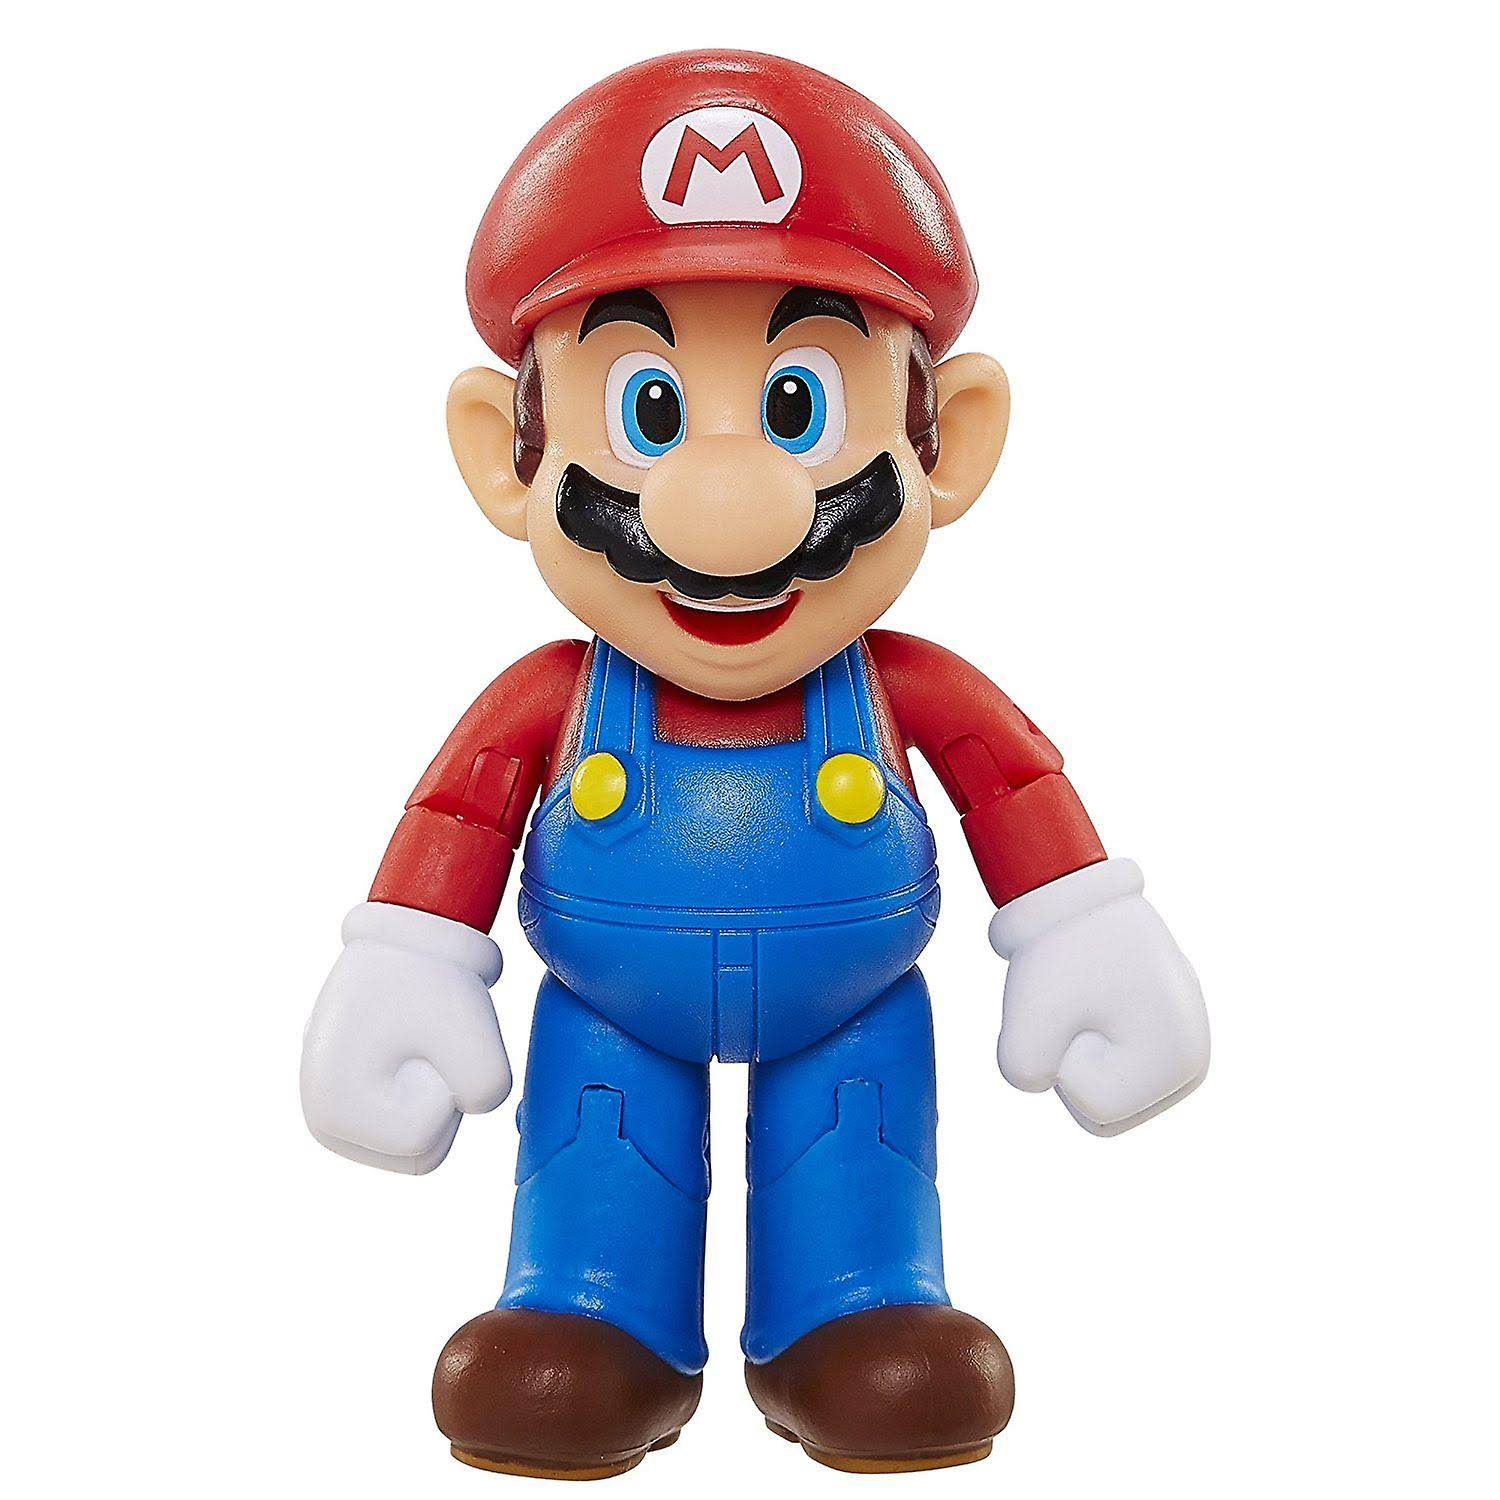 World of Nintendo Mario Maker with Utility Belt Action Figure - 4""